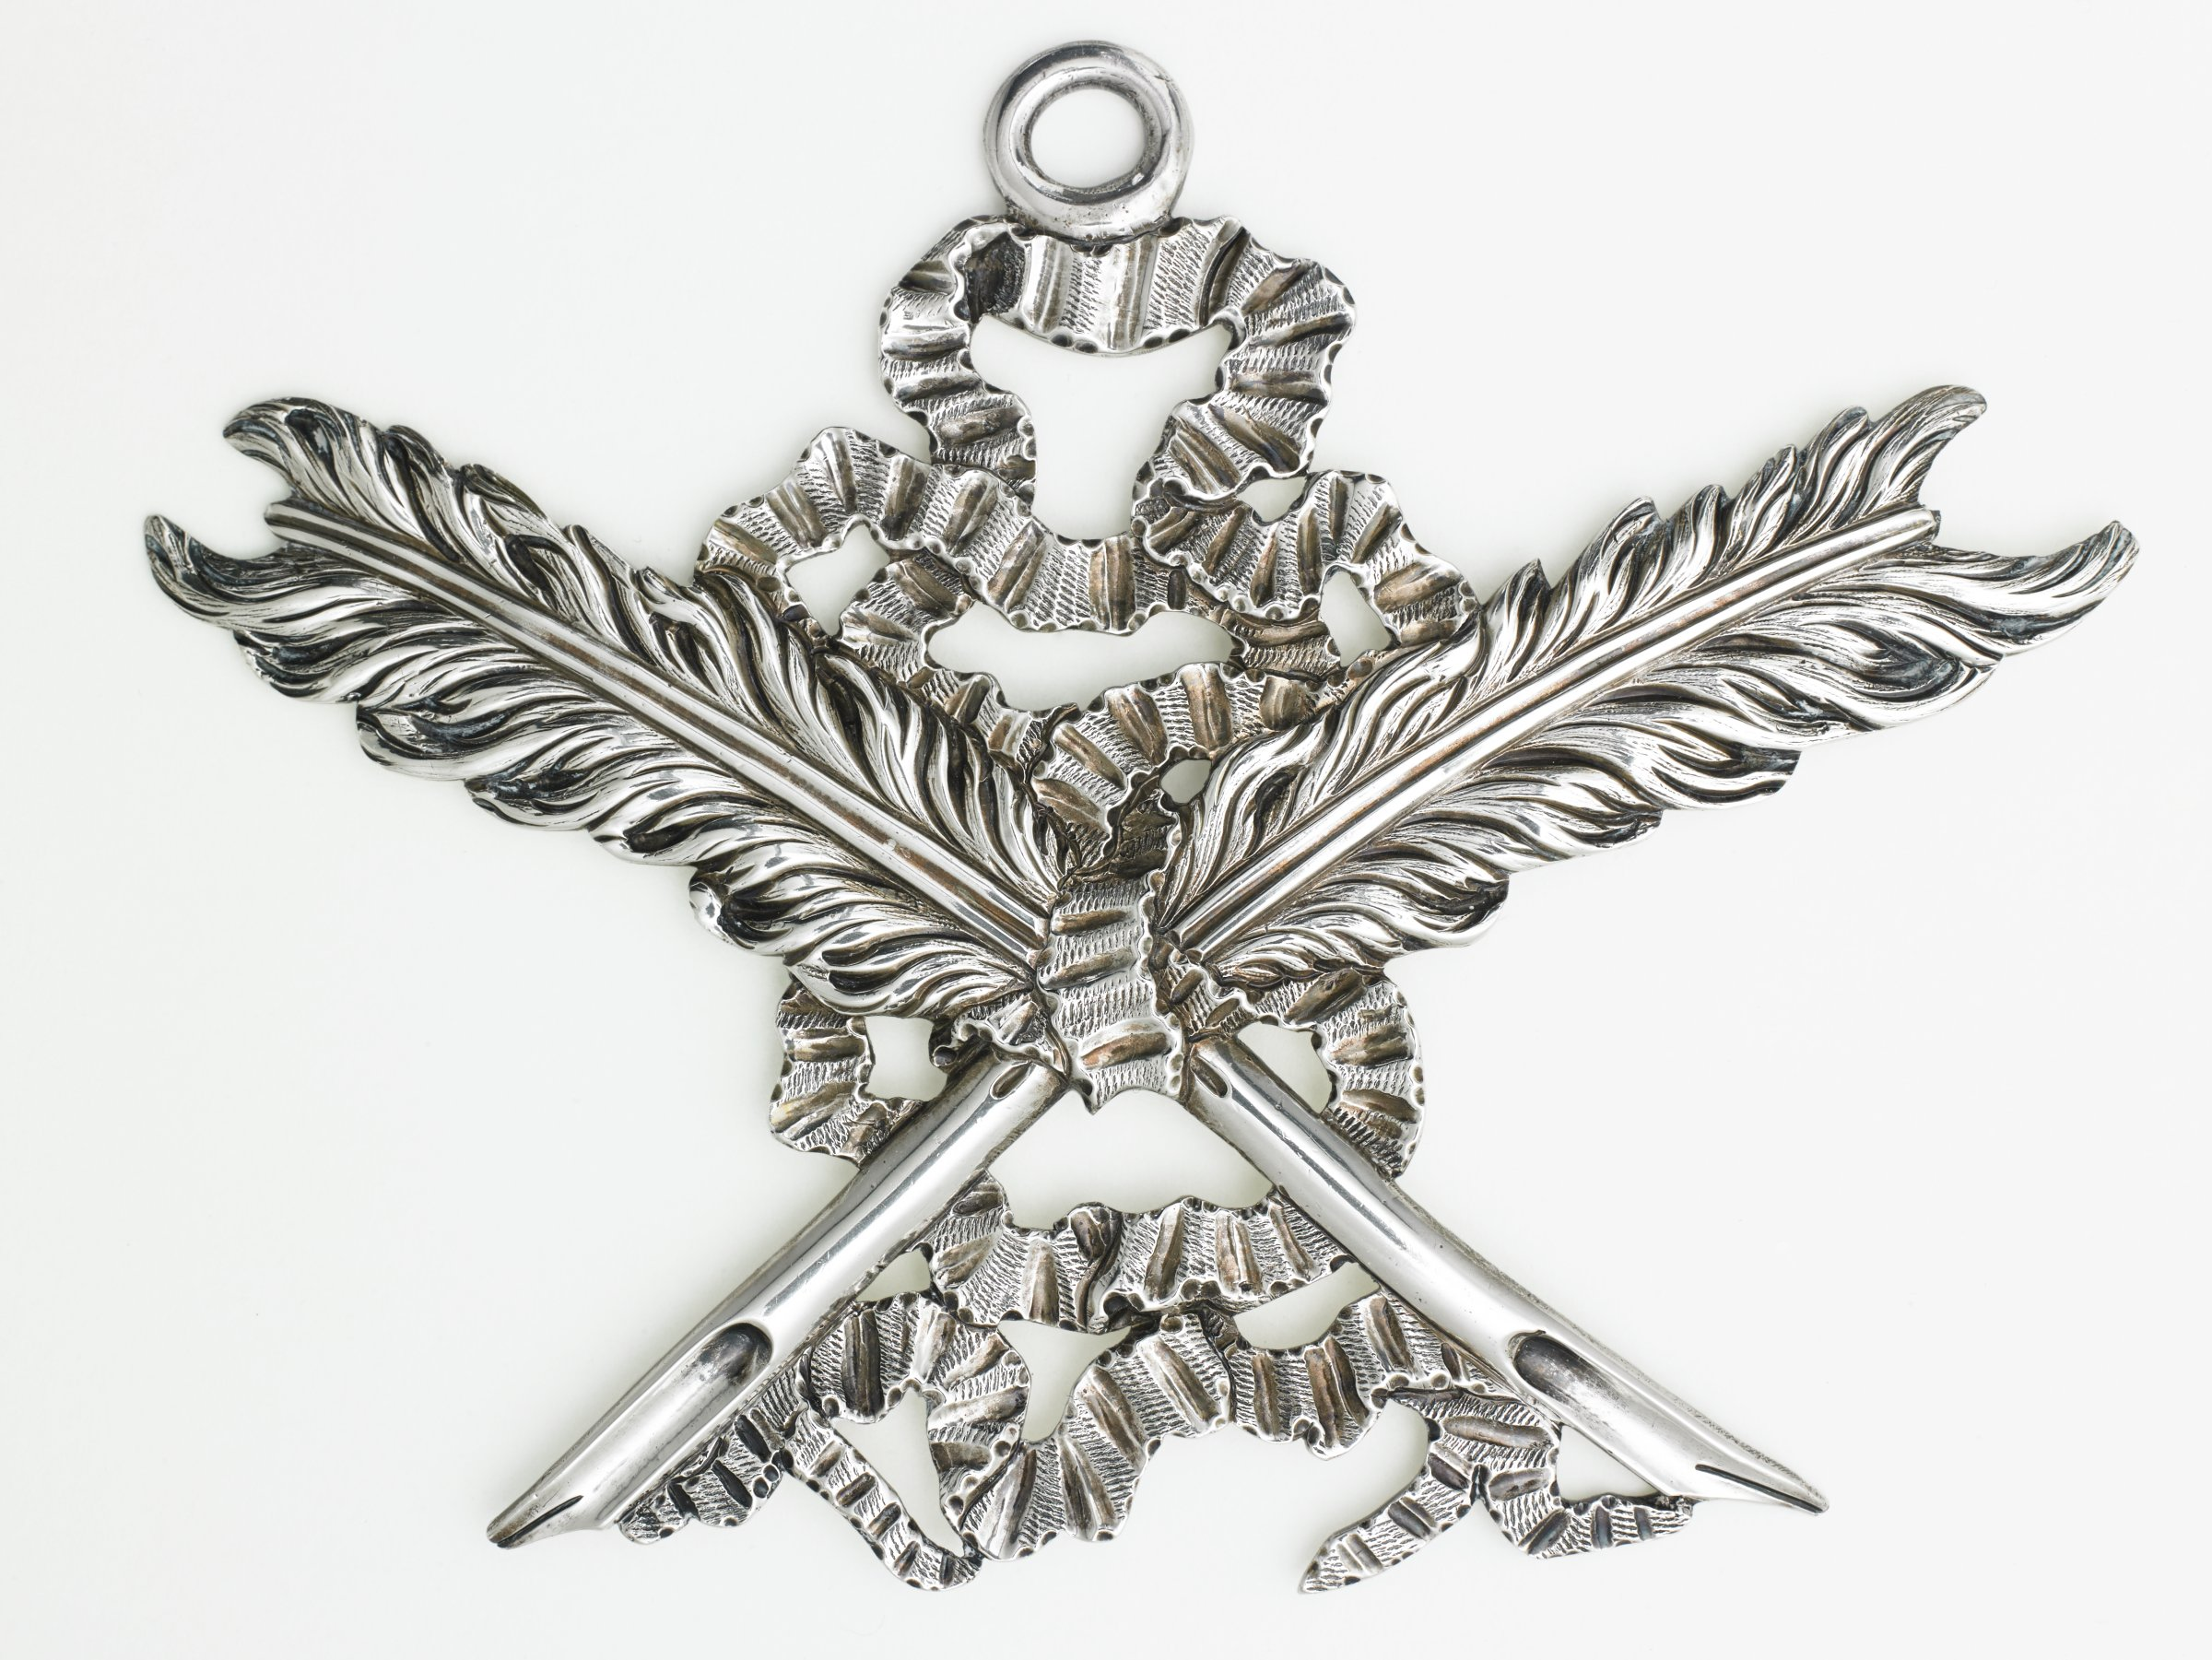 Large silver pendant, or jewel, made for the secretary of a Masonic group, in the form of two crossed feather quills with a ribbon, at the top a large eye through which to thread a chain from which to hang the jewel.